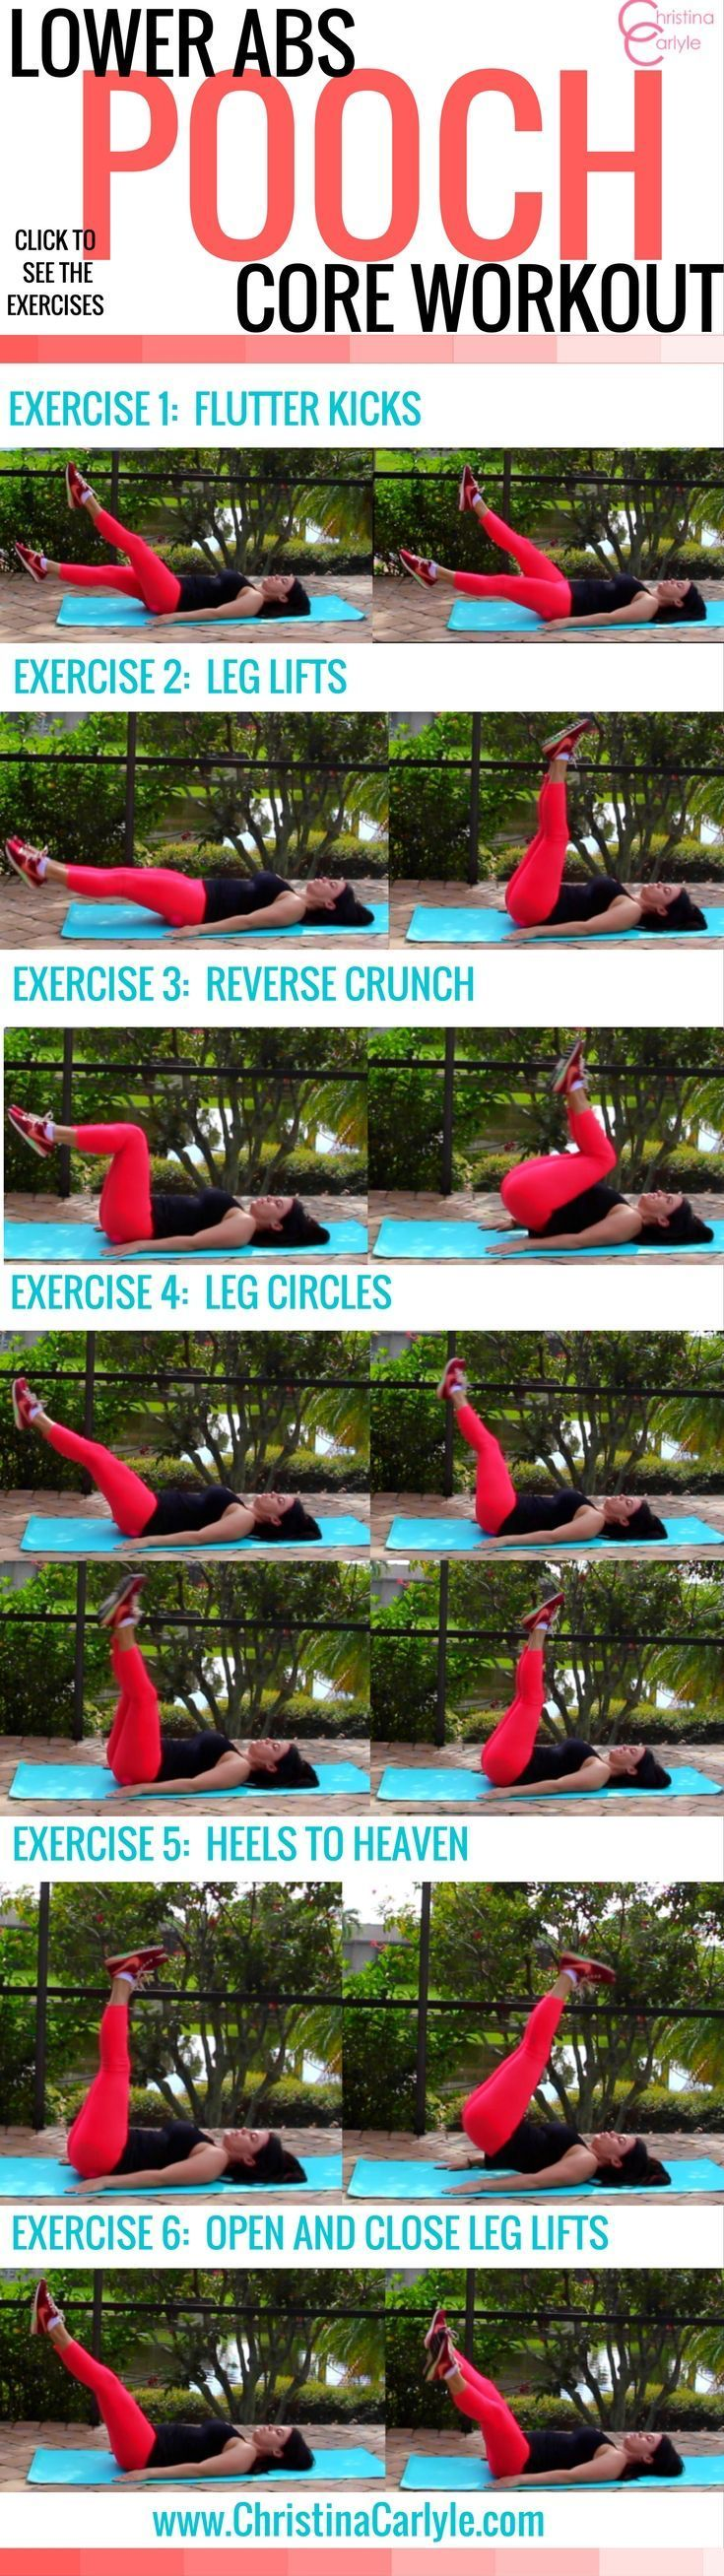 cool Does your belly pooch both you? Learn how to exercise your lower abs and get a L...